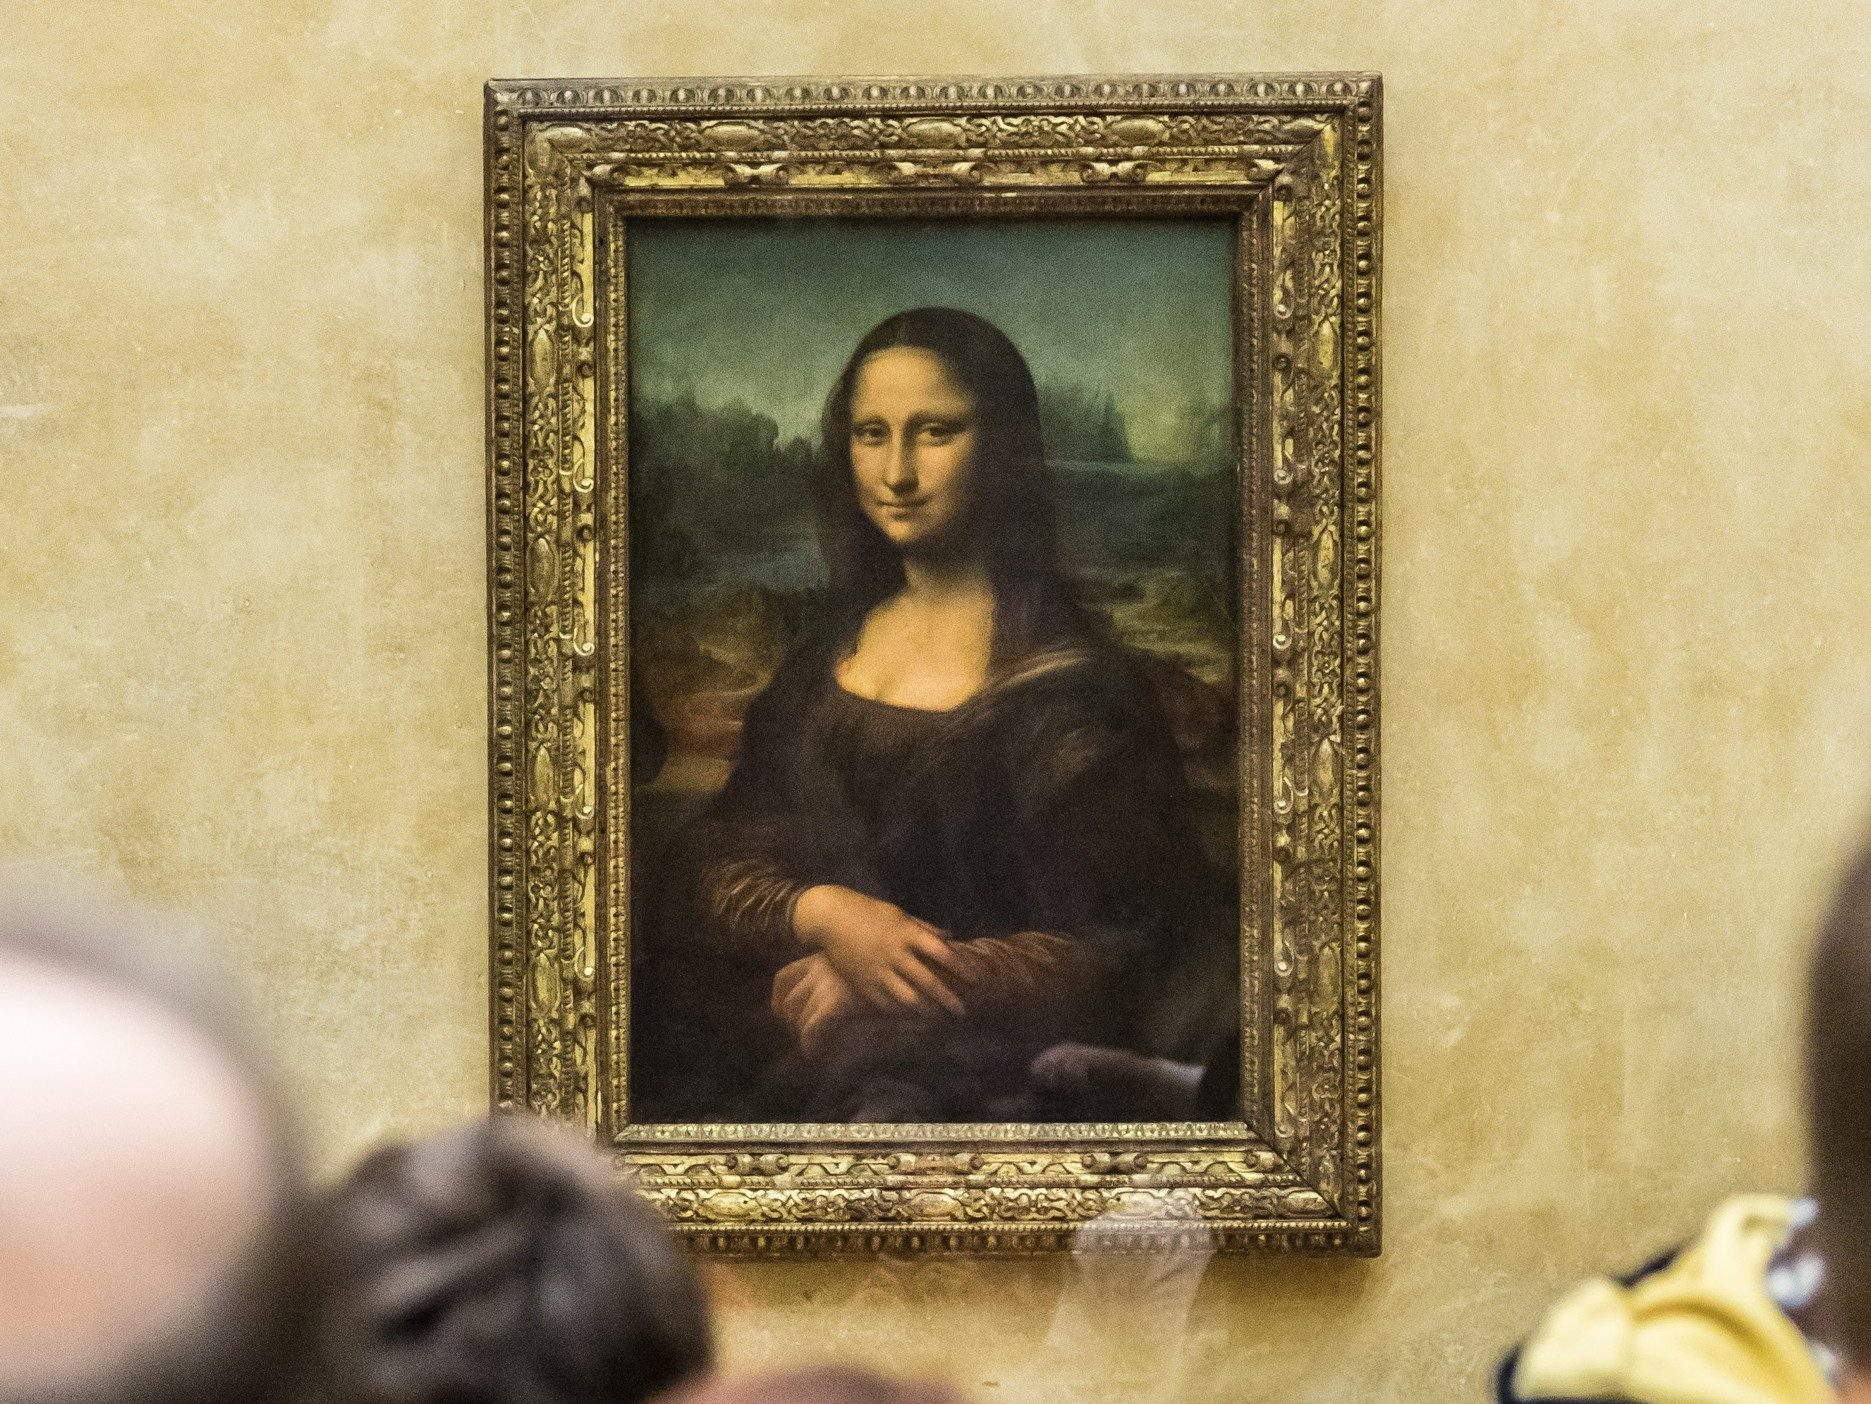 Mona Lisa mystery #7: Was Mona Lisa unwell?